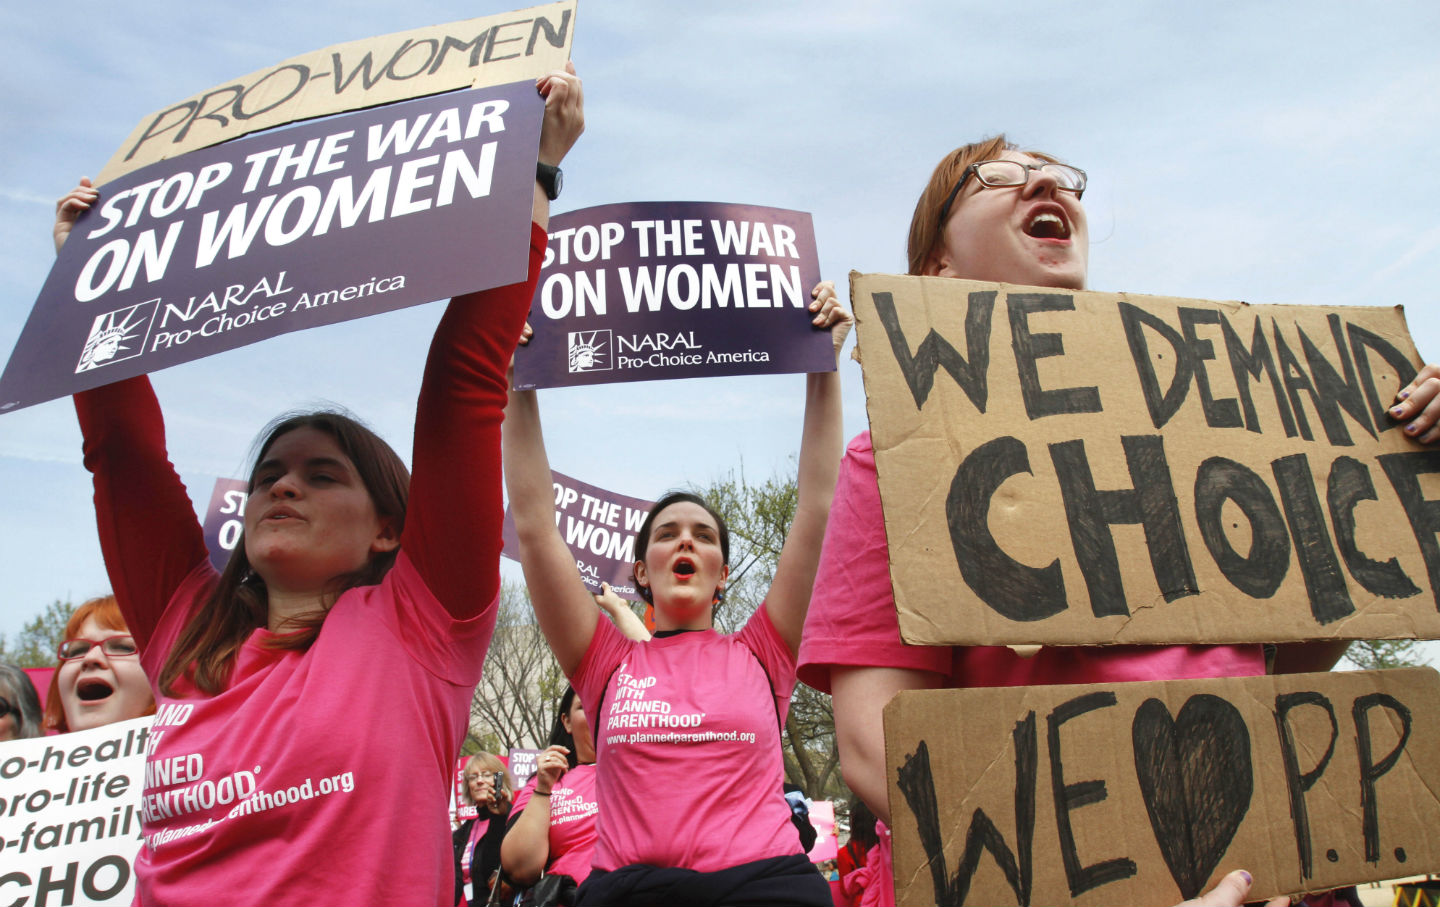 Va. House subcommittee OKs bill to defund Planned Parenthood